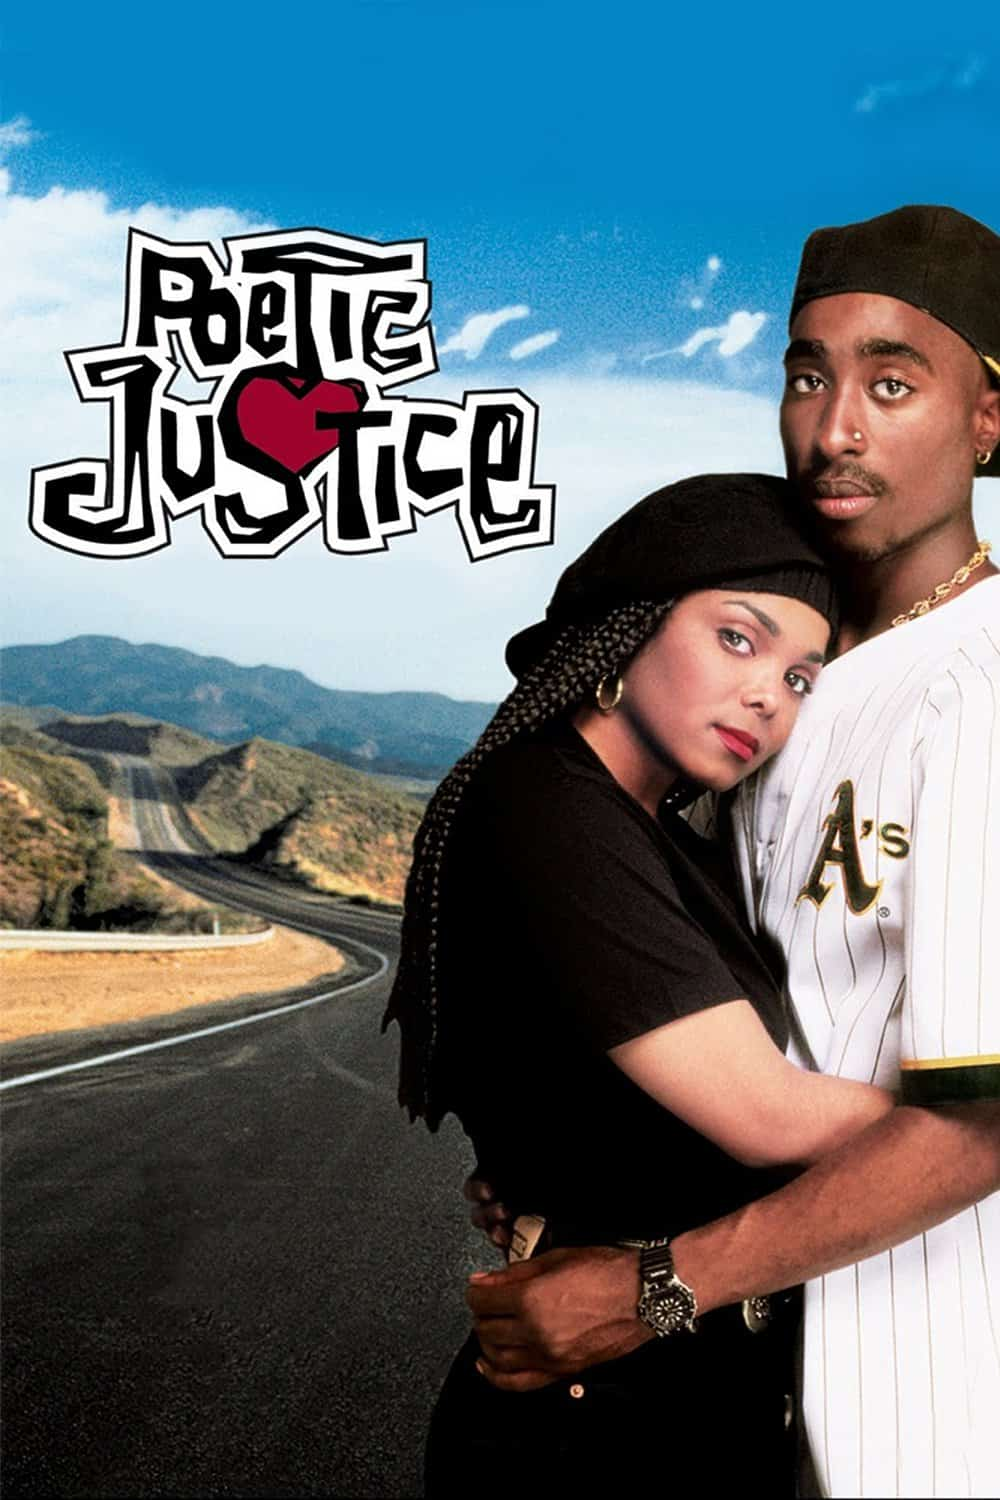 Poetic Justice, 1993